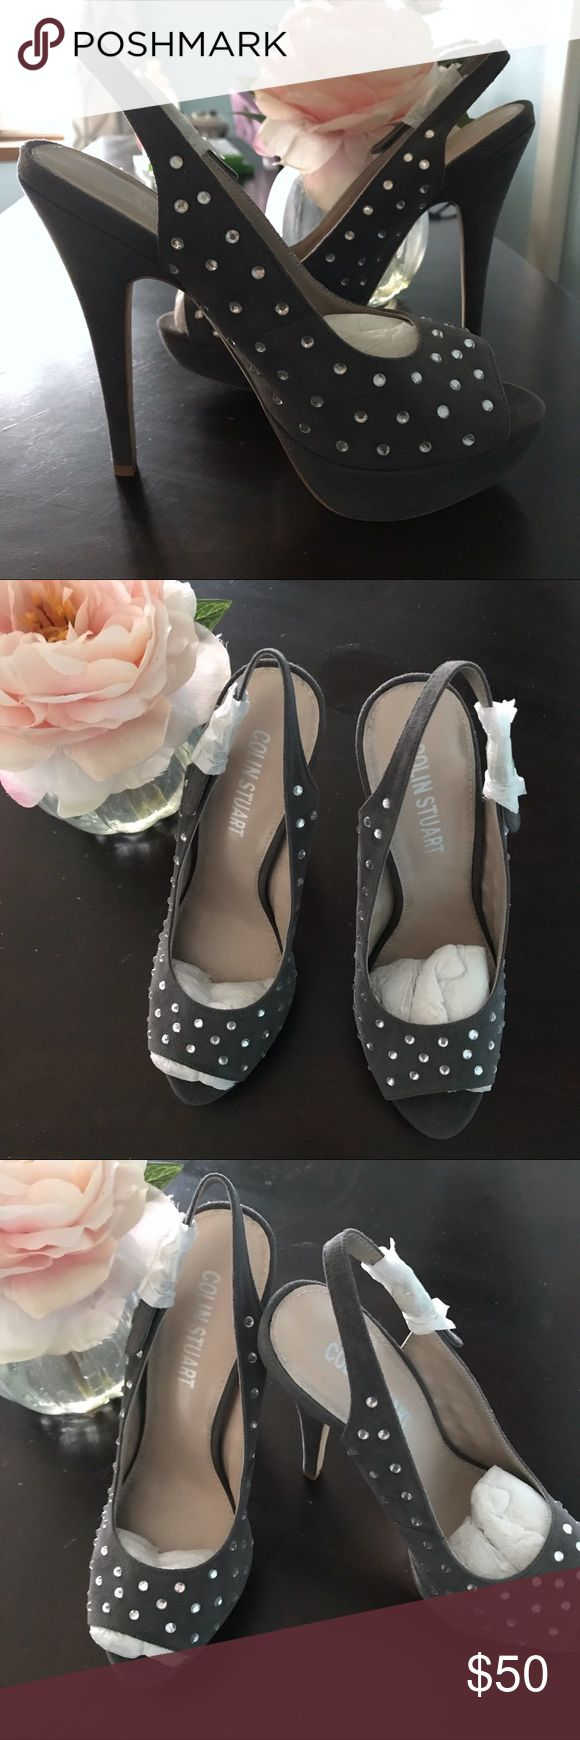 """Stiletto Colin Stuart Platform Peep Toes Slingback NEW without Box STILETTO Gray Colin Stuart Platform Peep Toes Slingbacks with Diamond (fake) Rhinestones. The platform is 1.5"""" and the heels are 6"""".  Size 7B NWOB Colin Stuart Shoes Heels"""